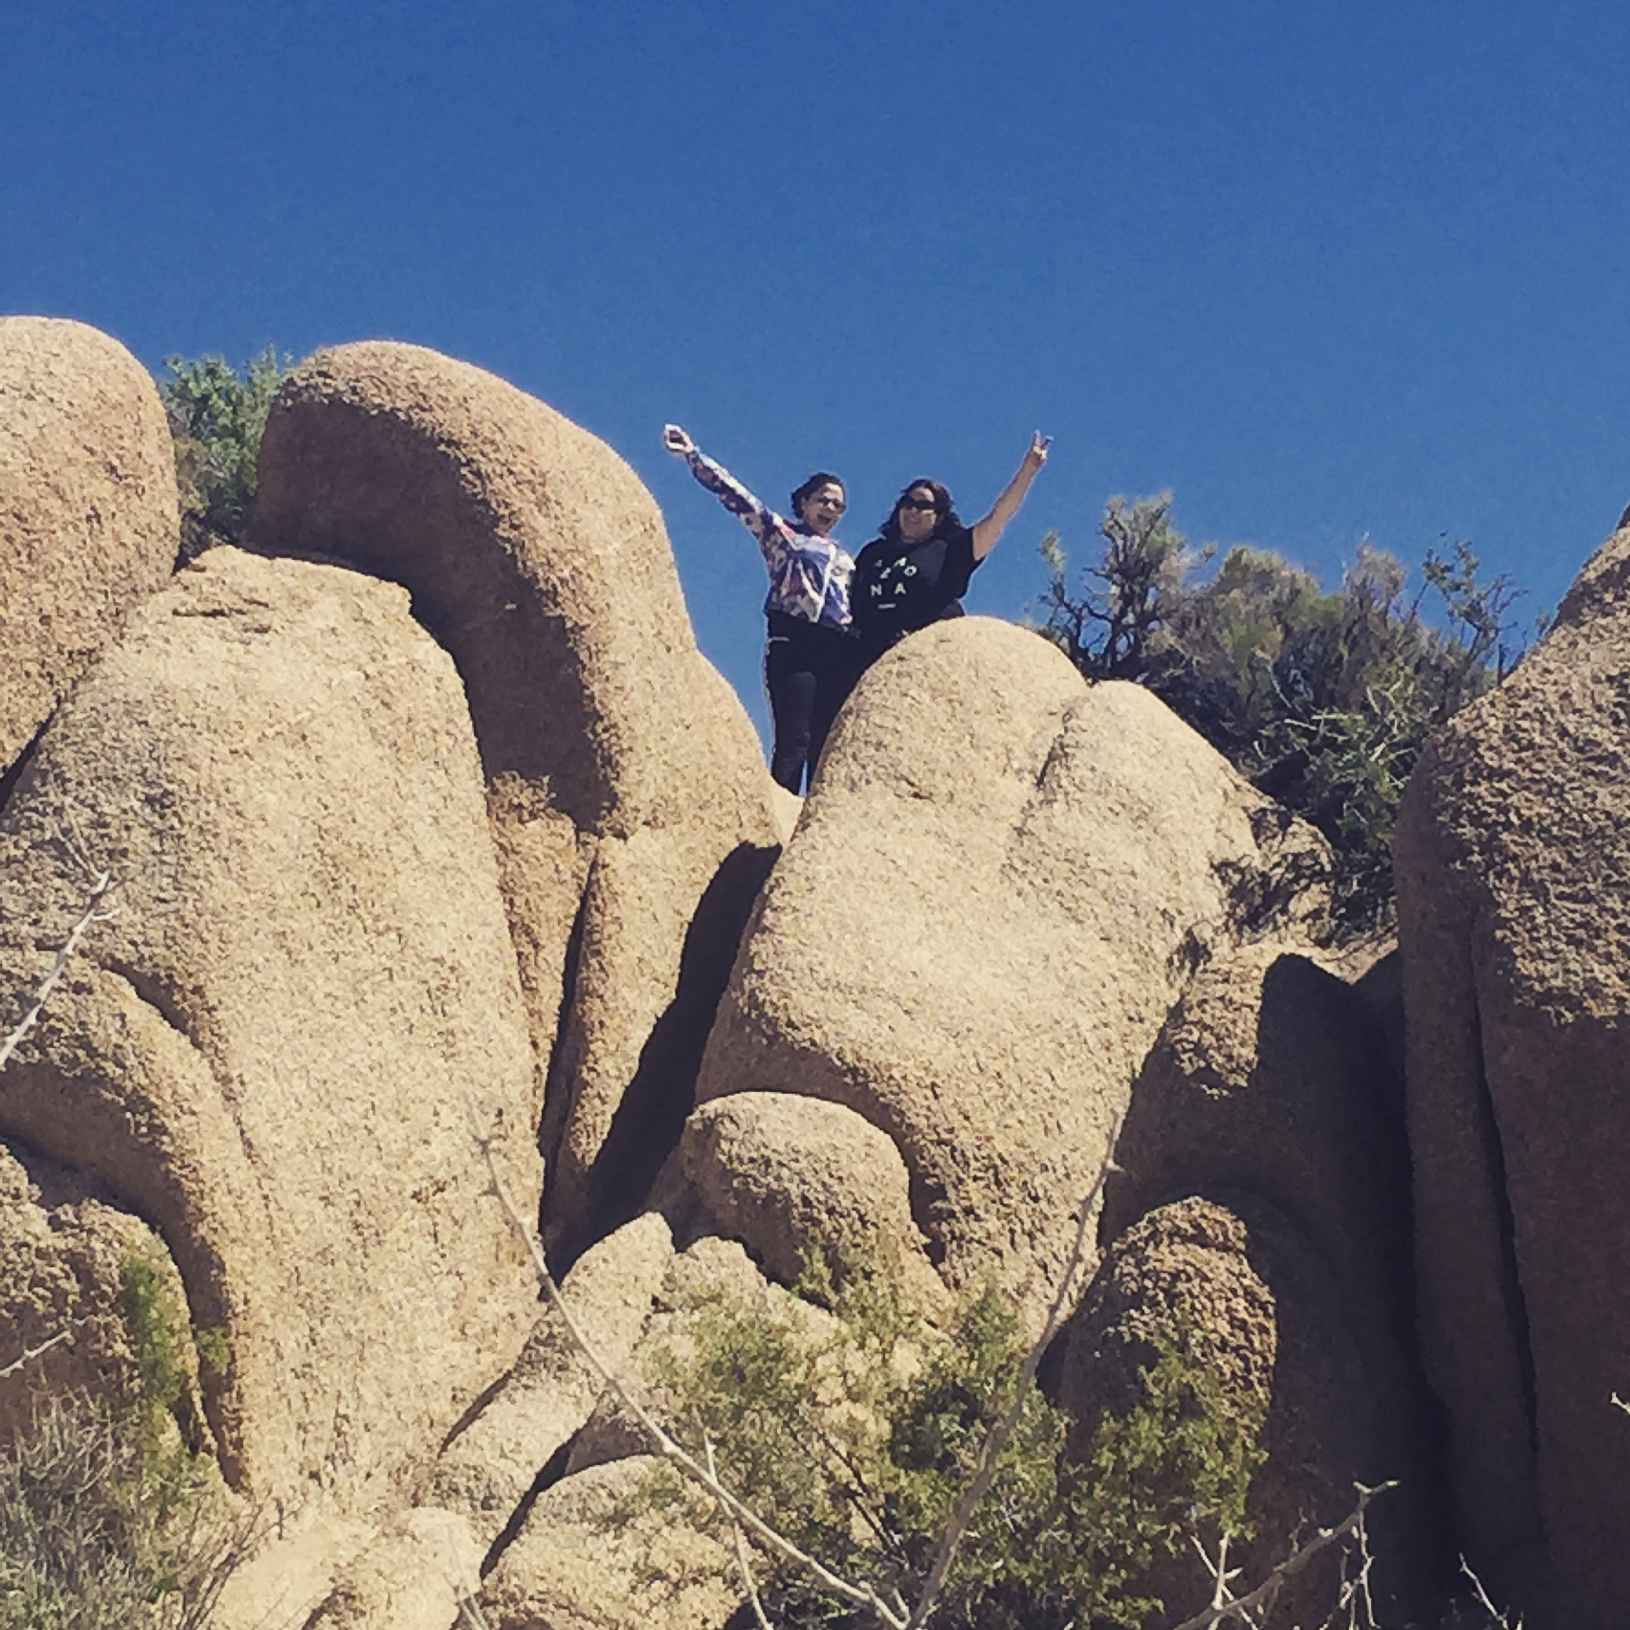 Rocking climbing at Joshua Tree National Park